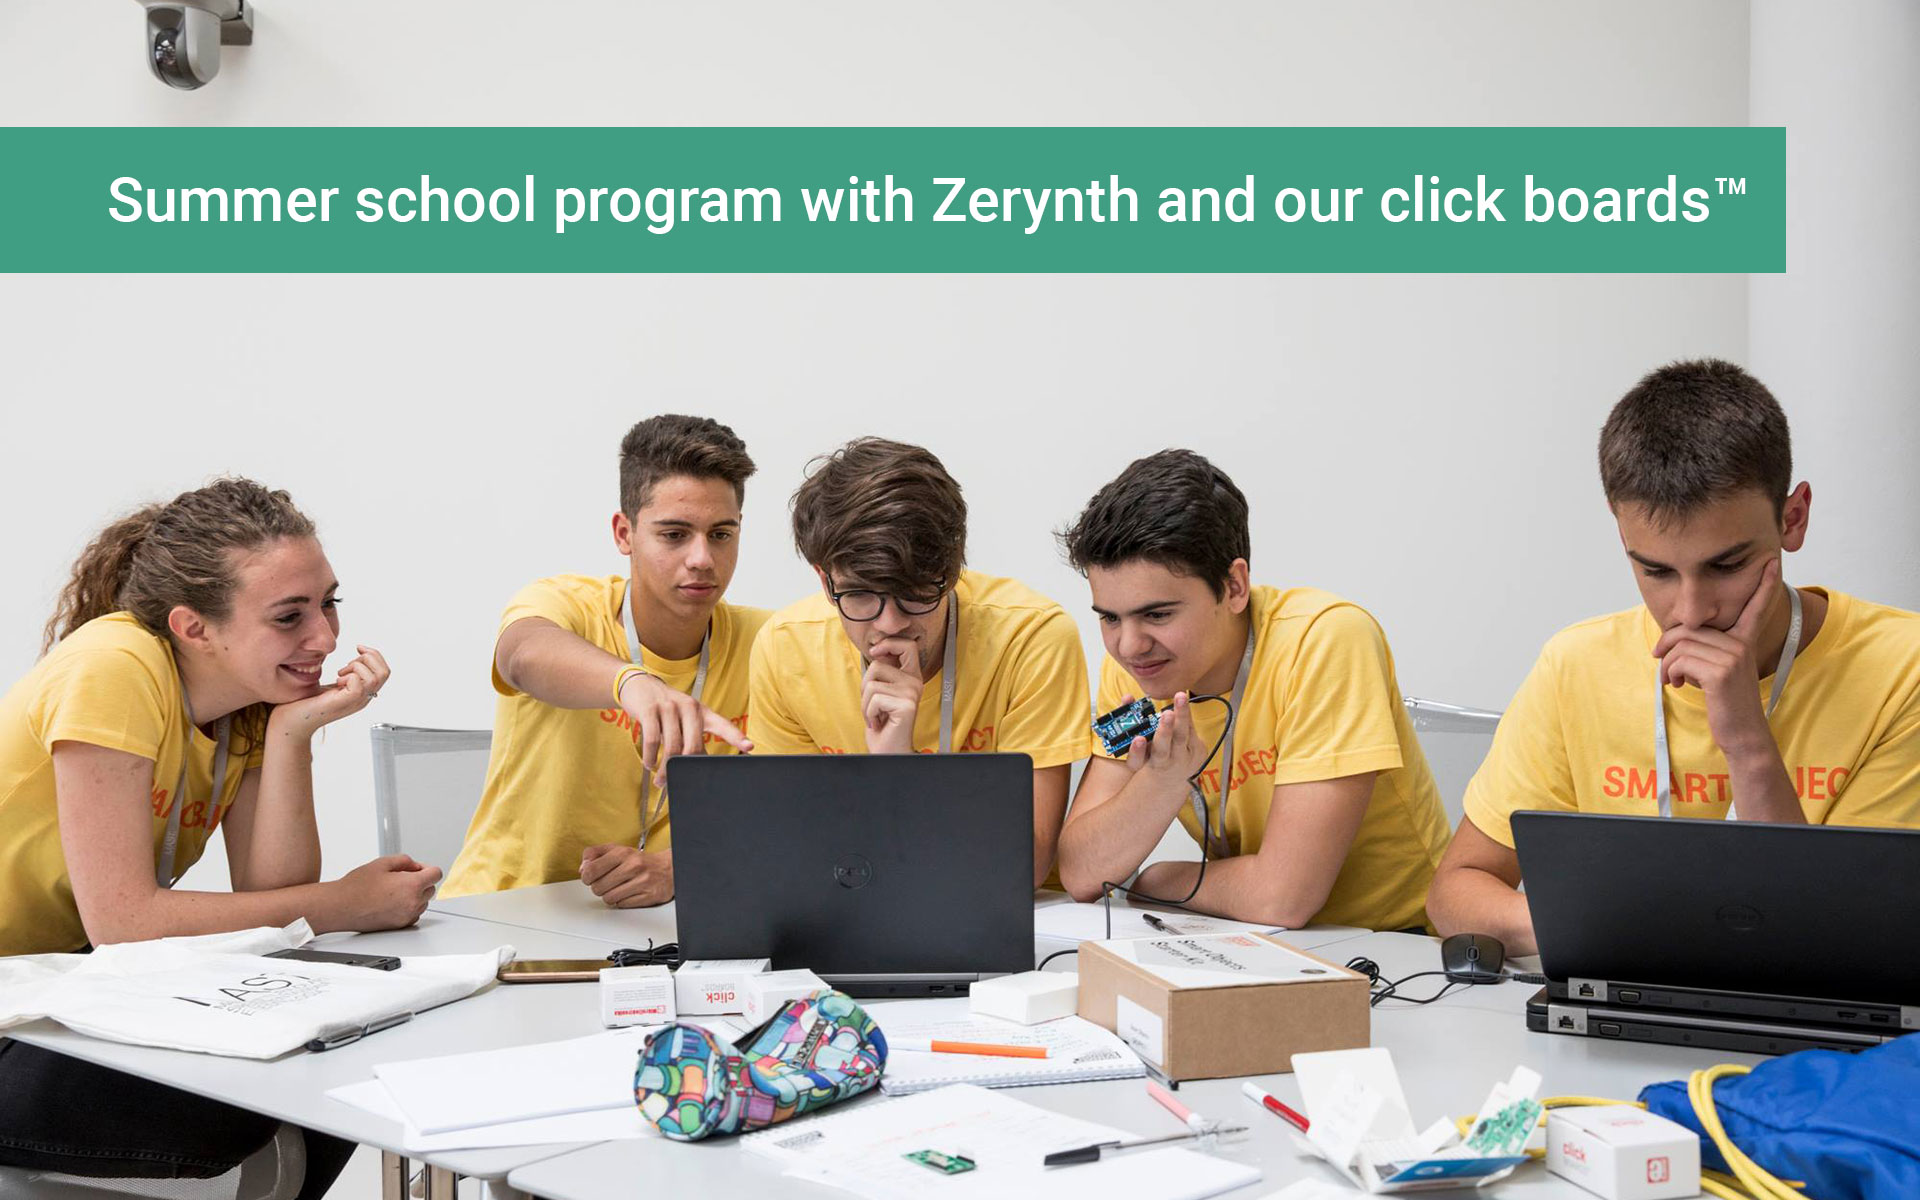 Click boards™ join a summer school in Italy